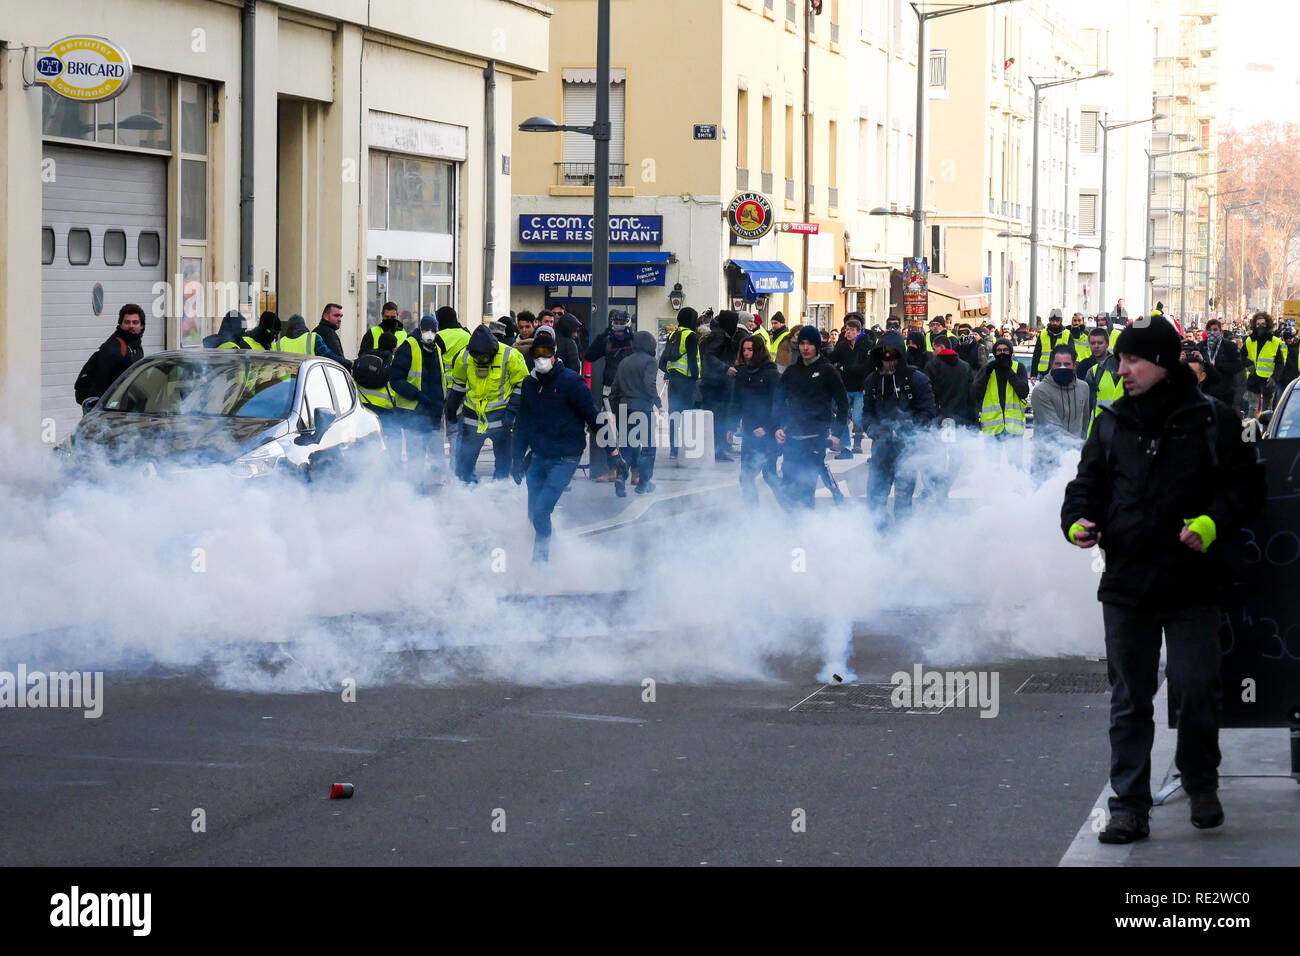 Lyon, France, January 19th 2019: Yellow jackets are seen in Lyon (Central-Eastern France) on january 19, 2019 as they take part to the 10th day of protest against french goverment reform projetct. Credit Photo: Serge Mouraret/Alamy Live News - Stock Image